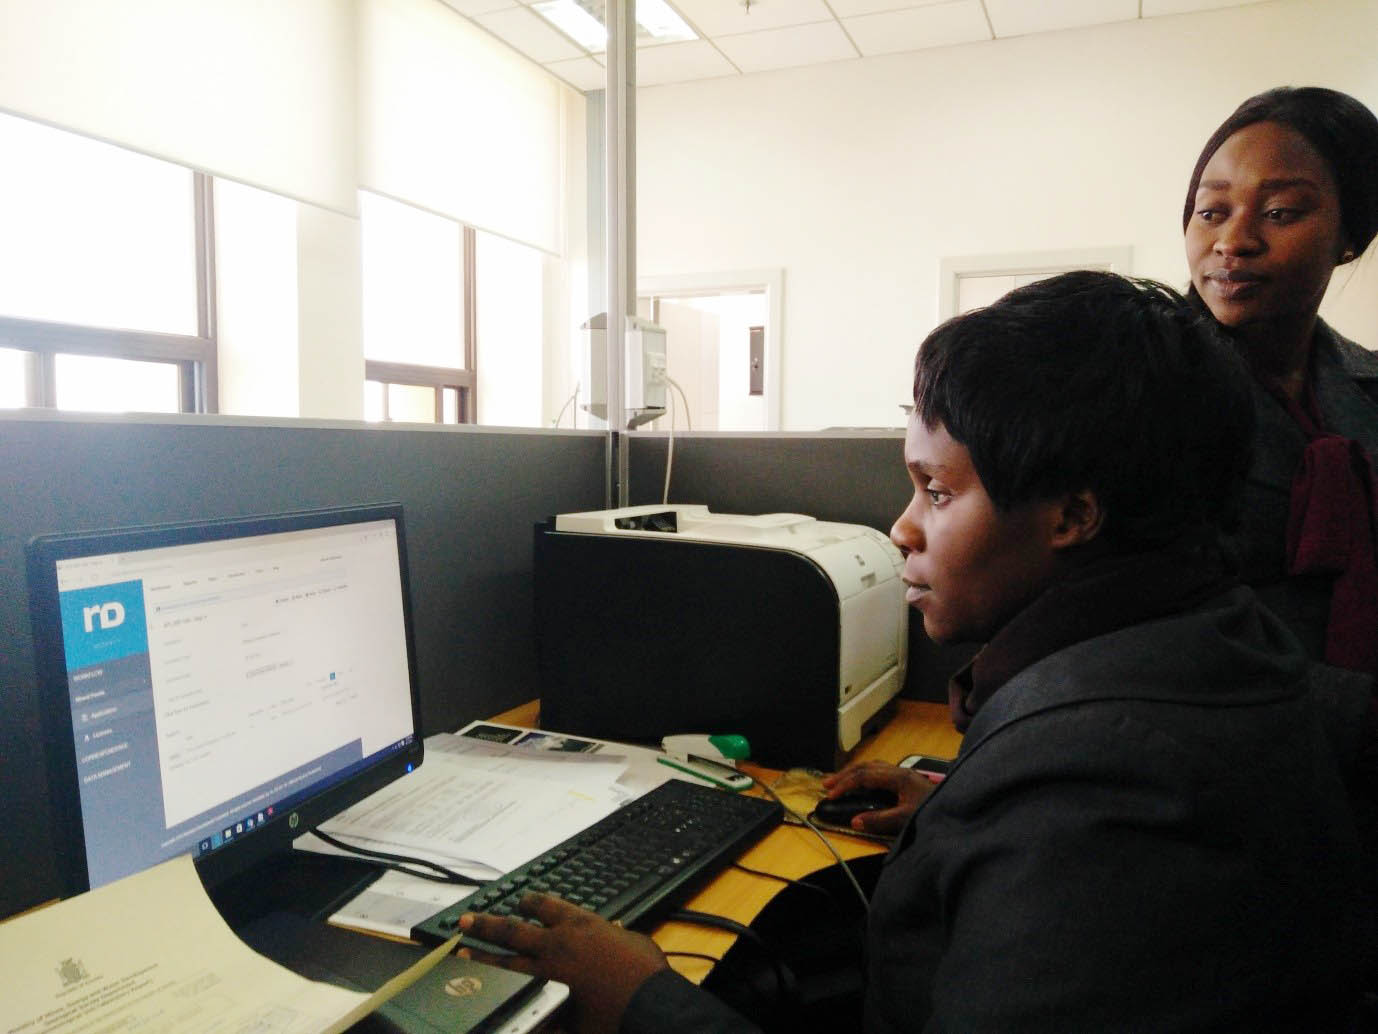 Stenographer Ms. Jean Mwenfa Simukonda gives out an export permit using the digital interface